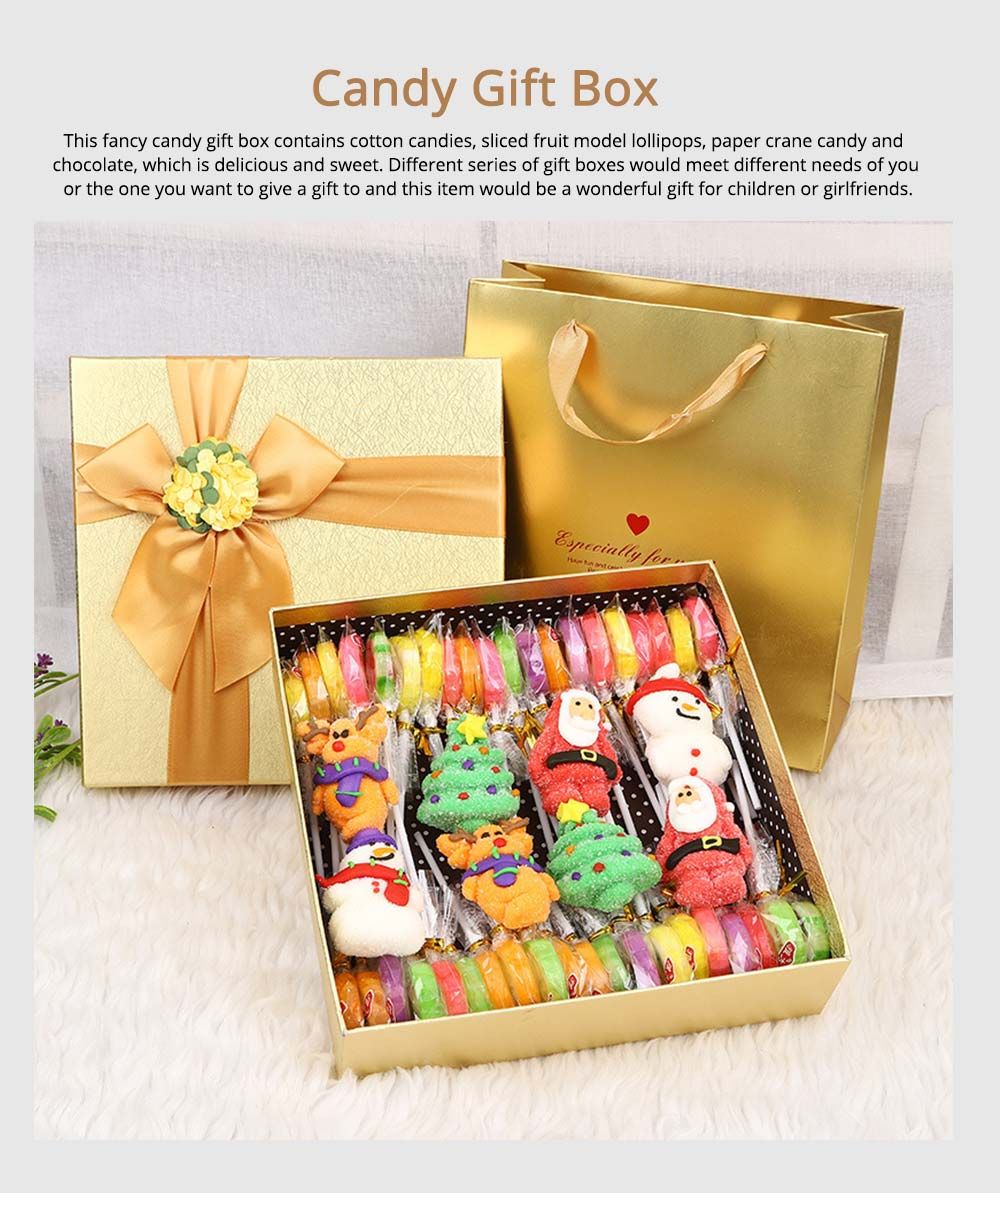 Fancy Easter Candy Gift Box  for Kids, Cotton Candy Marshmallow Lollipop Chocolate  8